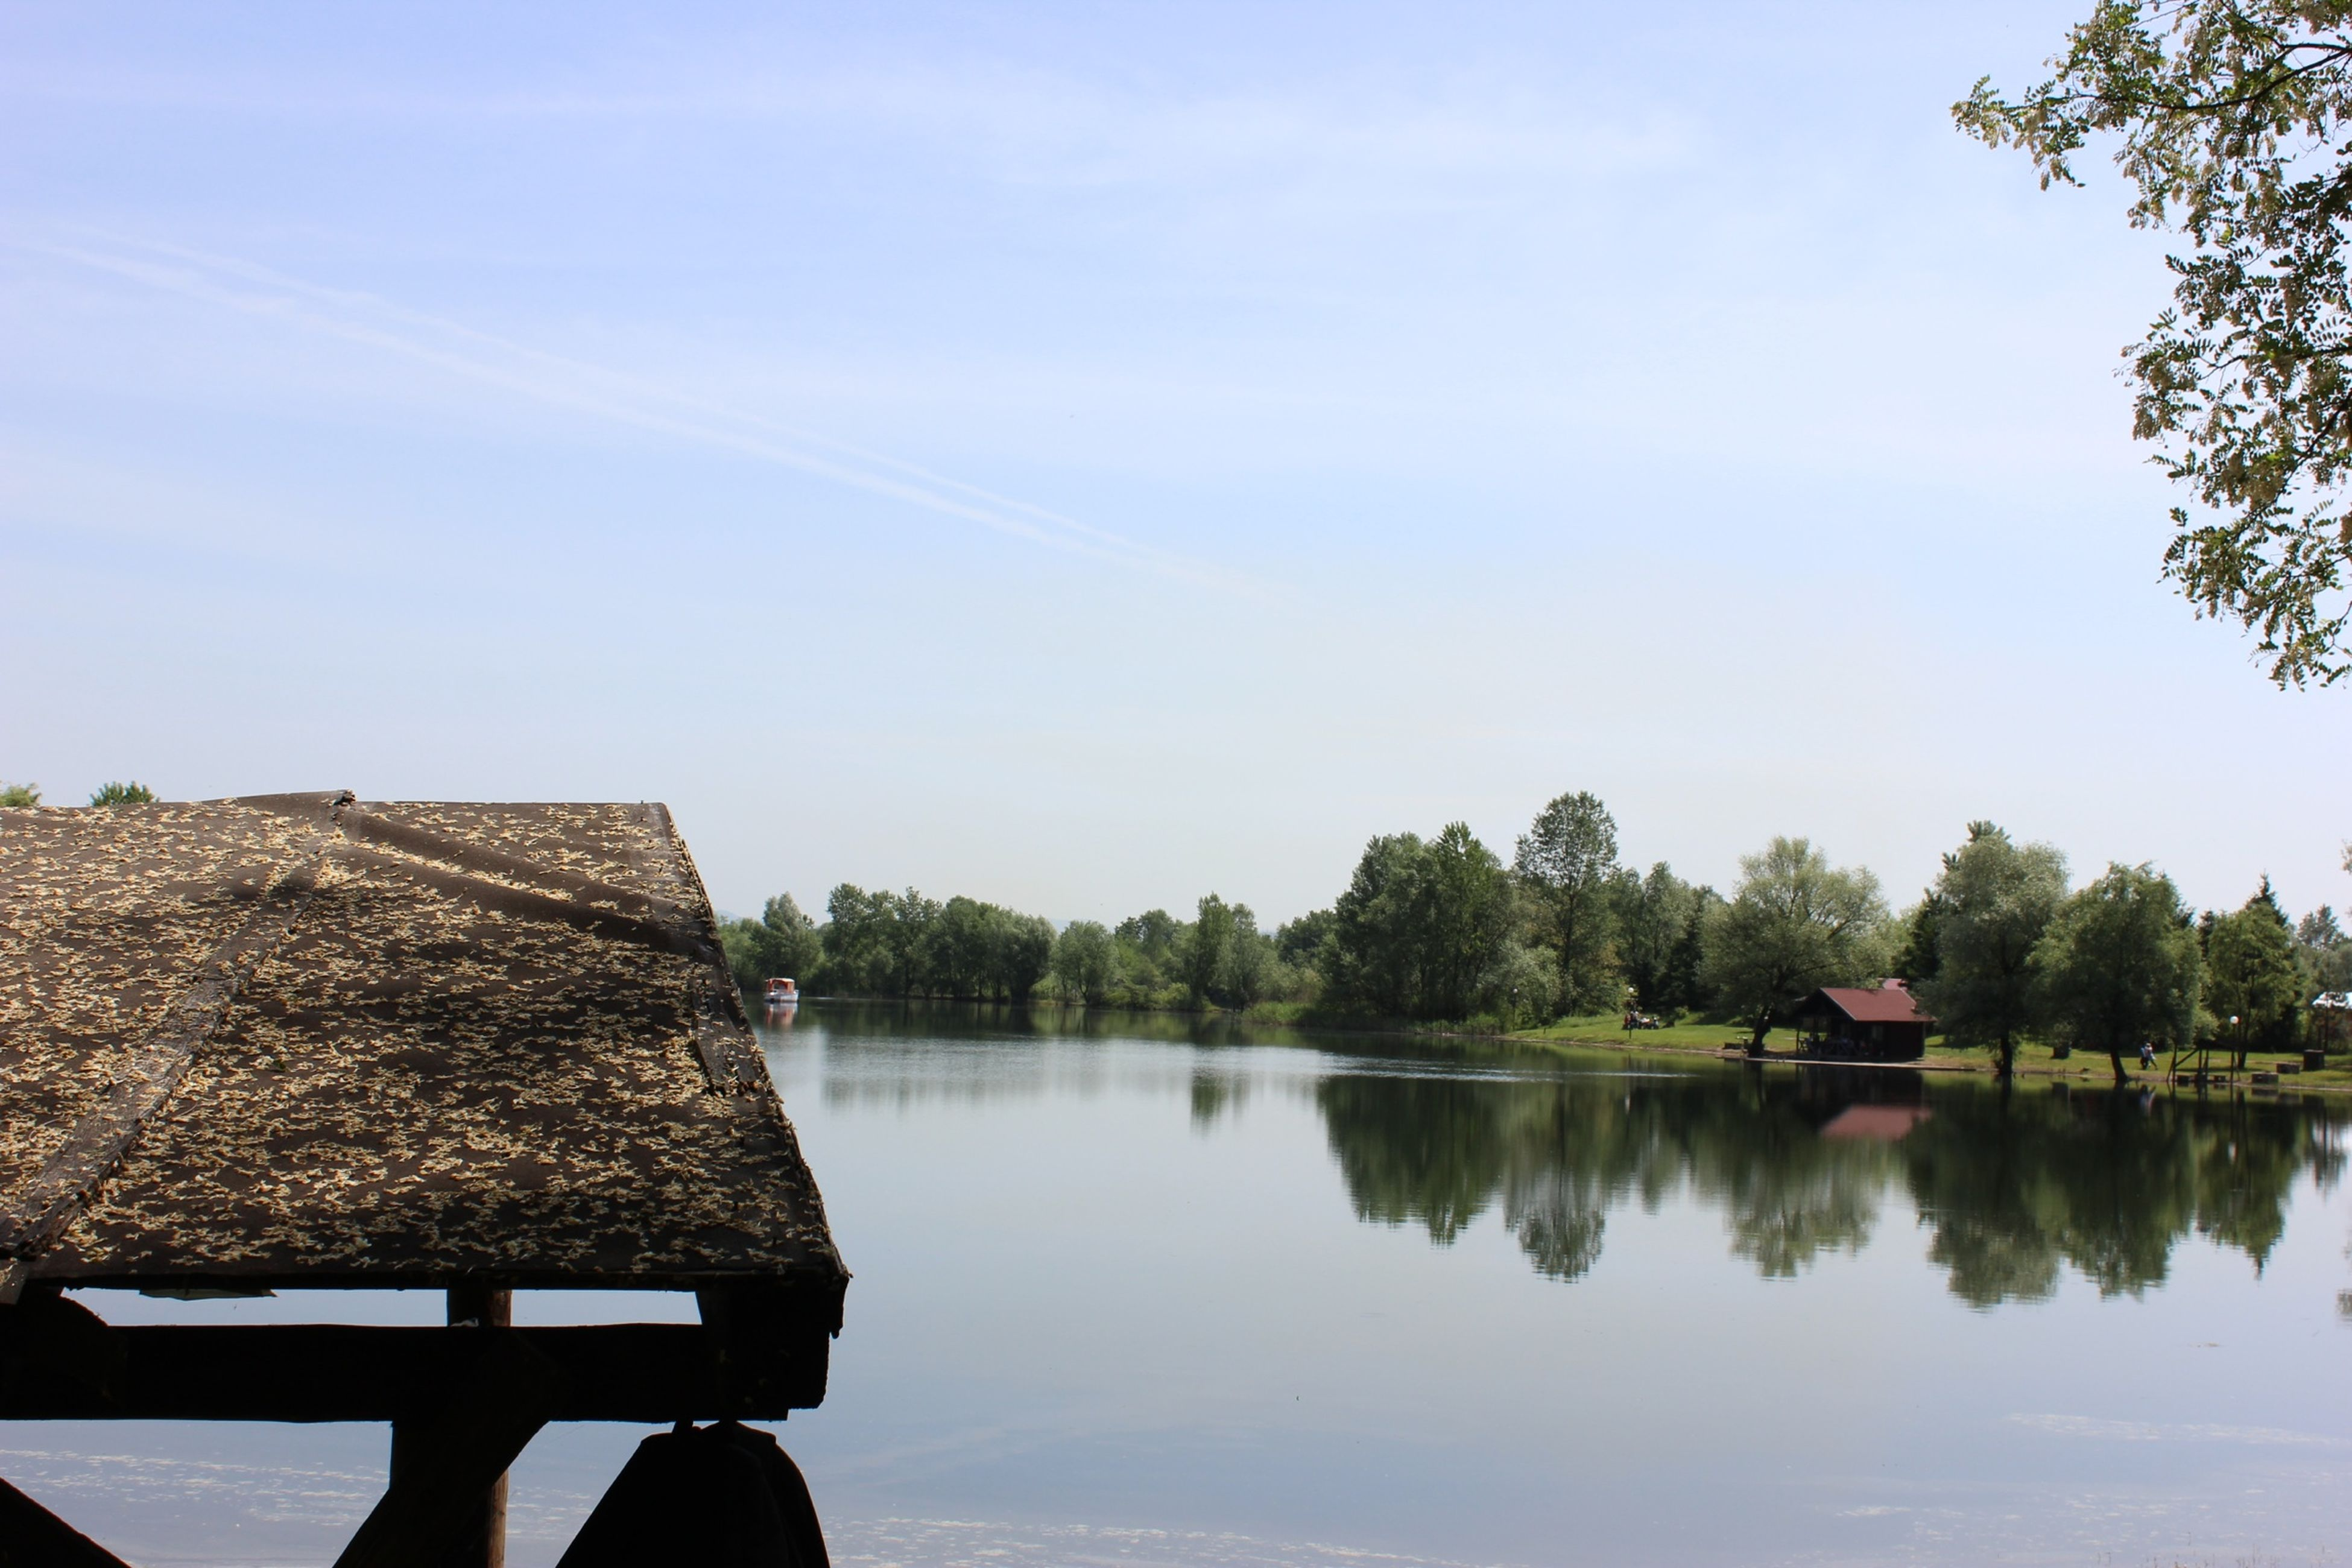 water, reflection, lake, tranquility, tree, tranquil scene, scenics, beauty in nature, nature, sky, idyllic, calm, standing water, lakeshore, clear sky, outdoors, river, non-urban scene